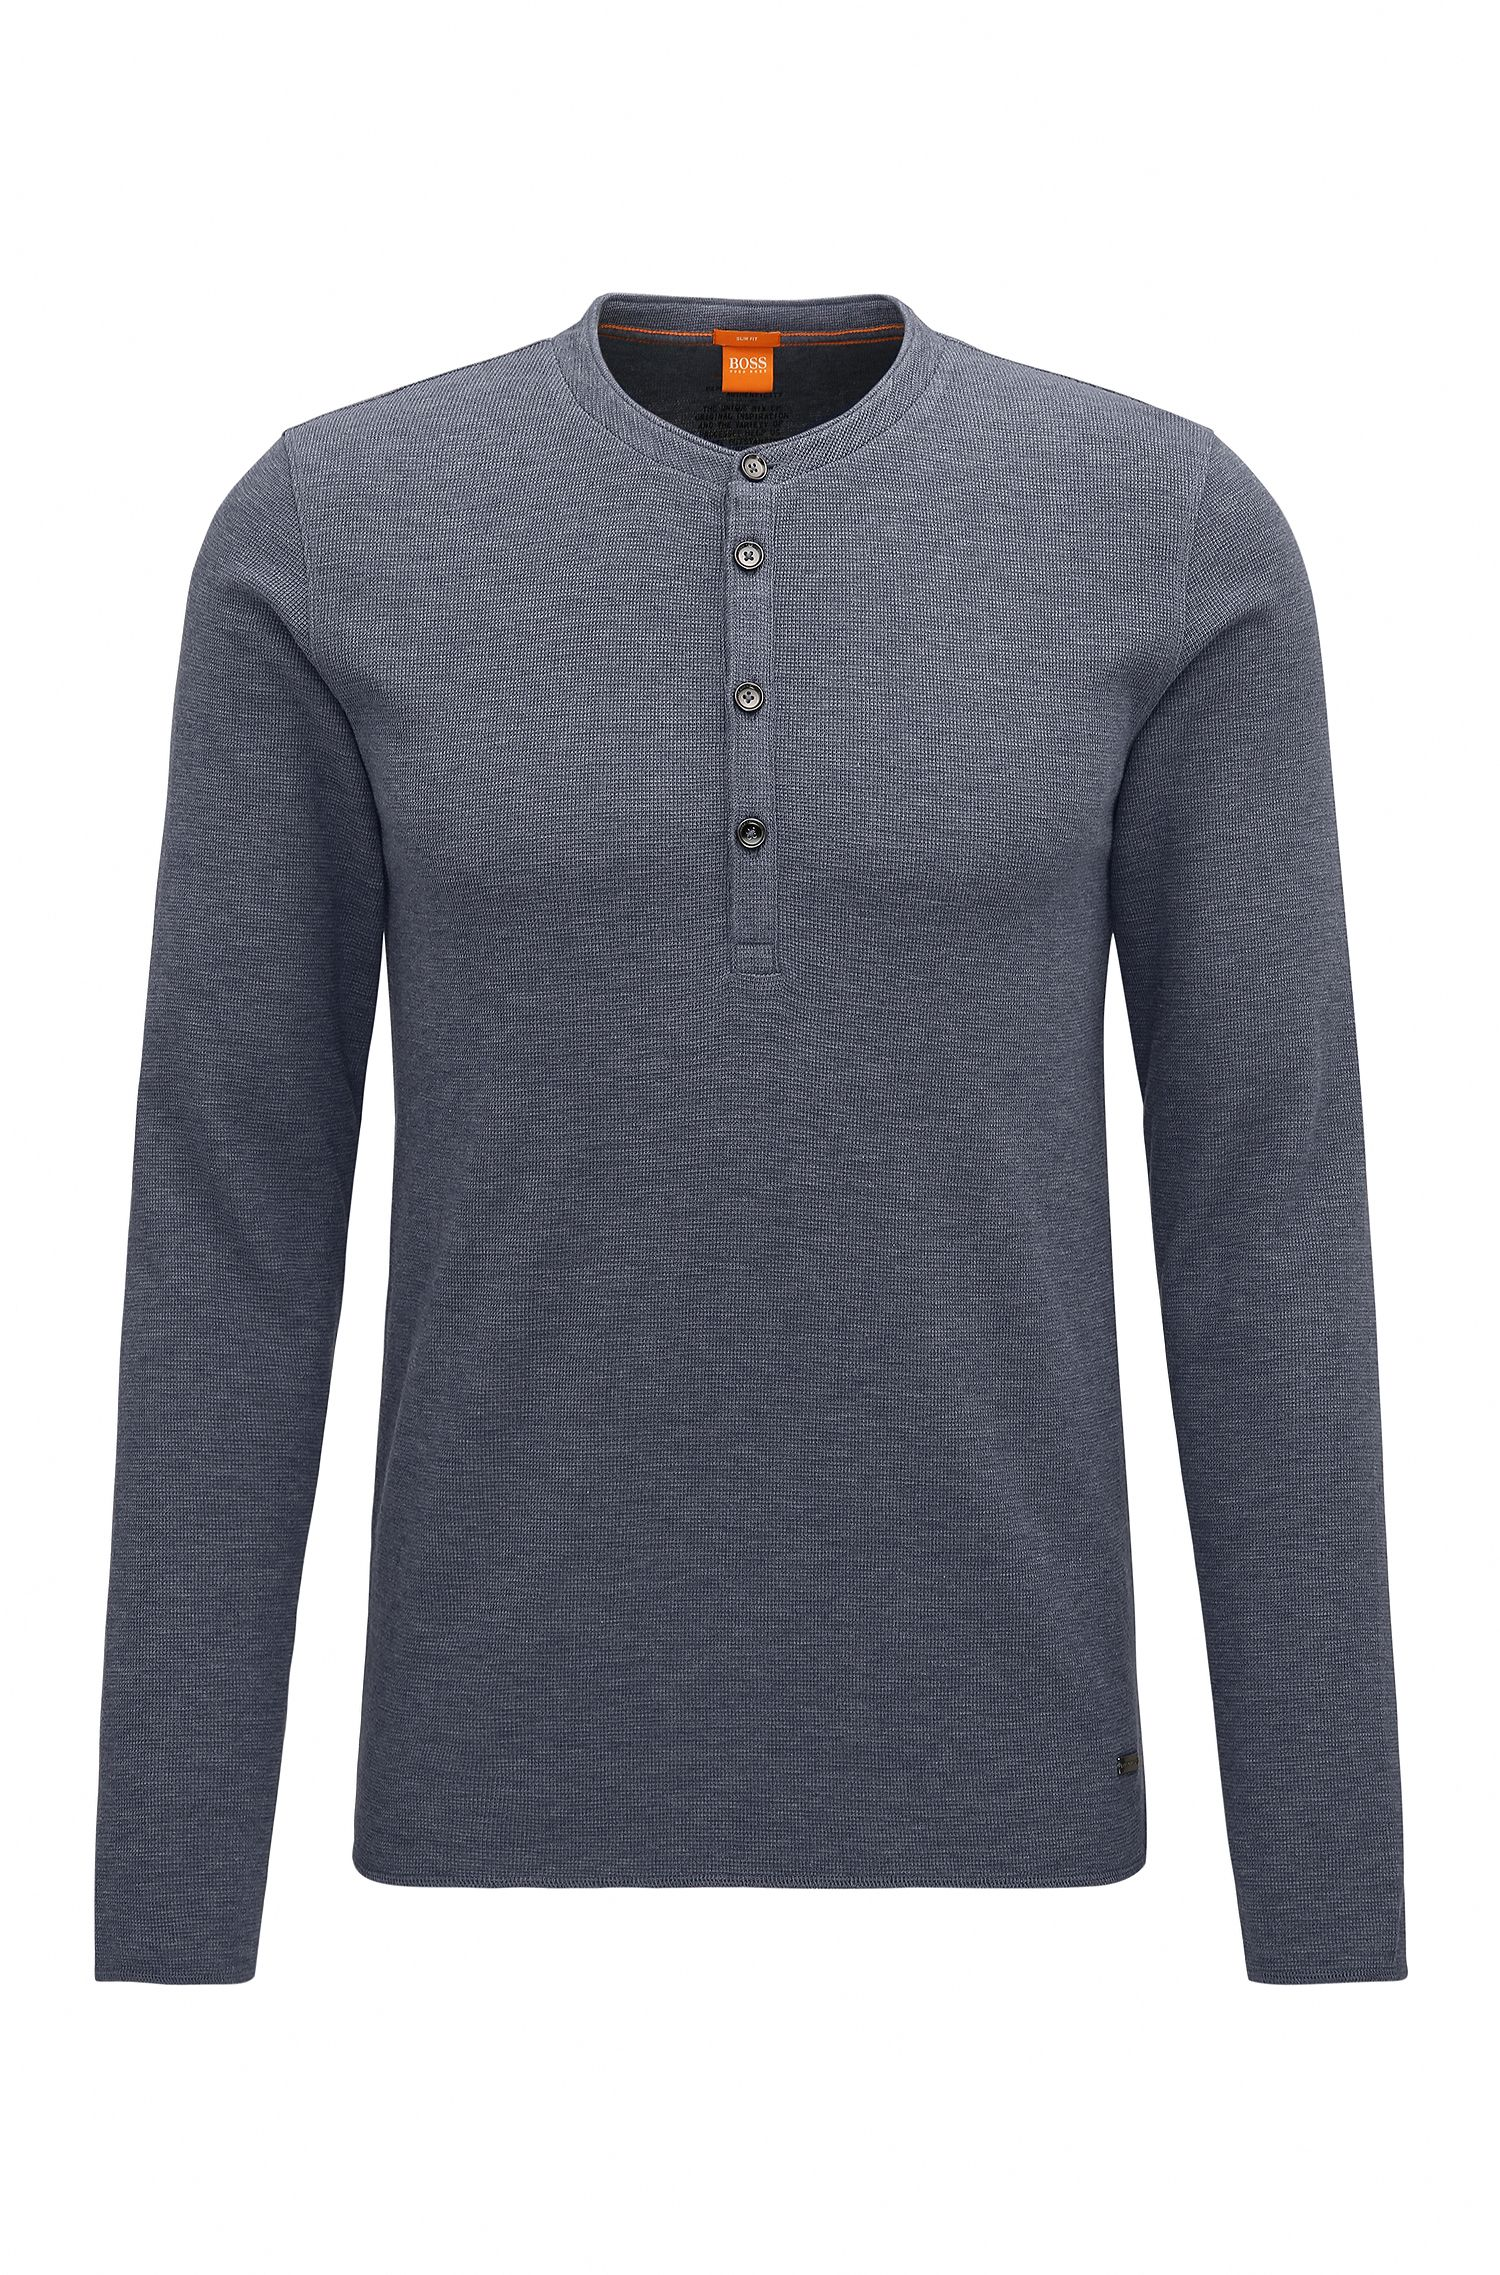 T-shirt in stile Henley slim fit in jersey di cotone singolo